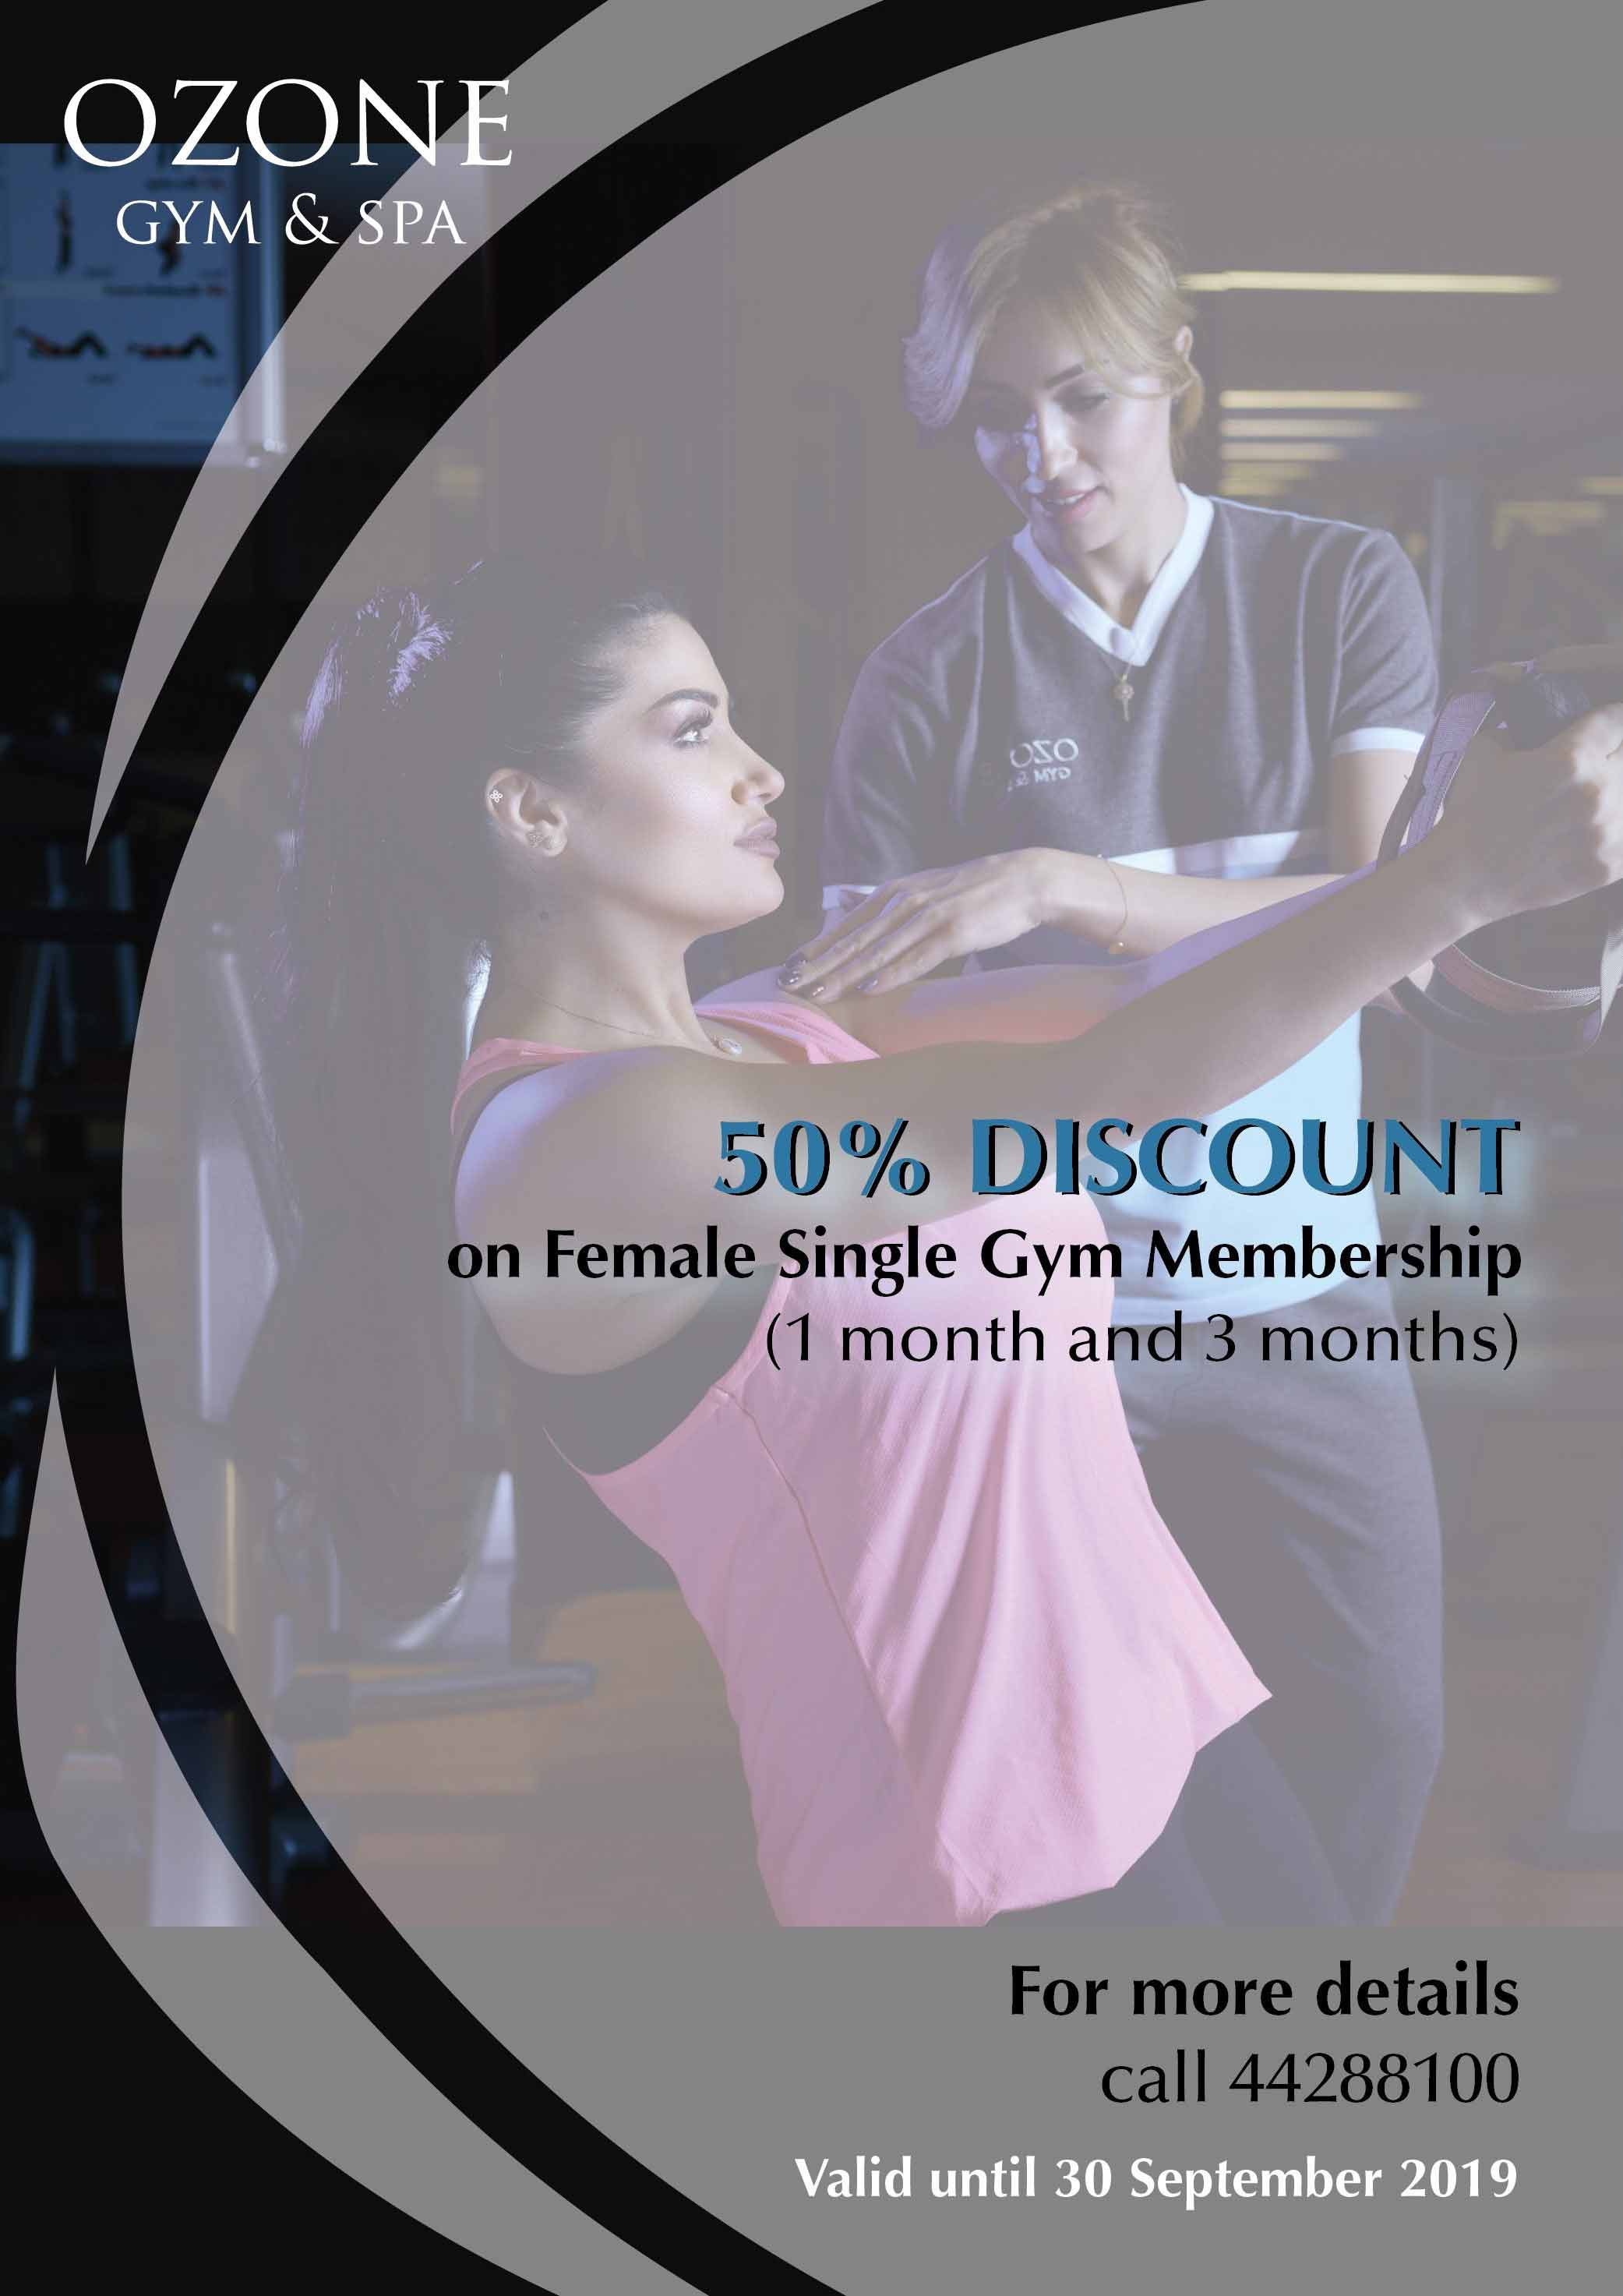 La Cigale Hotel - 50% Discount on Female Gym Membership